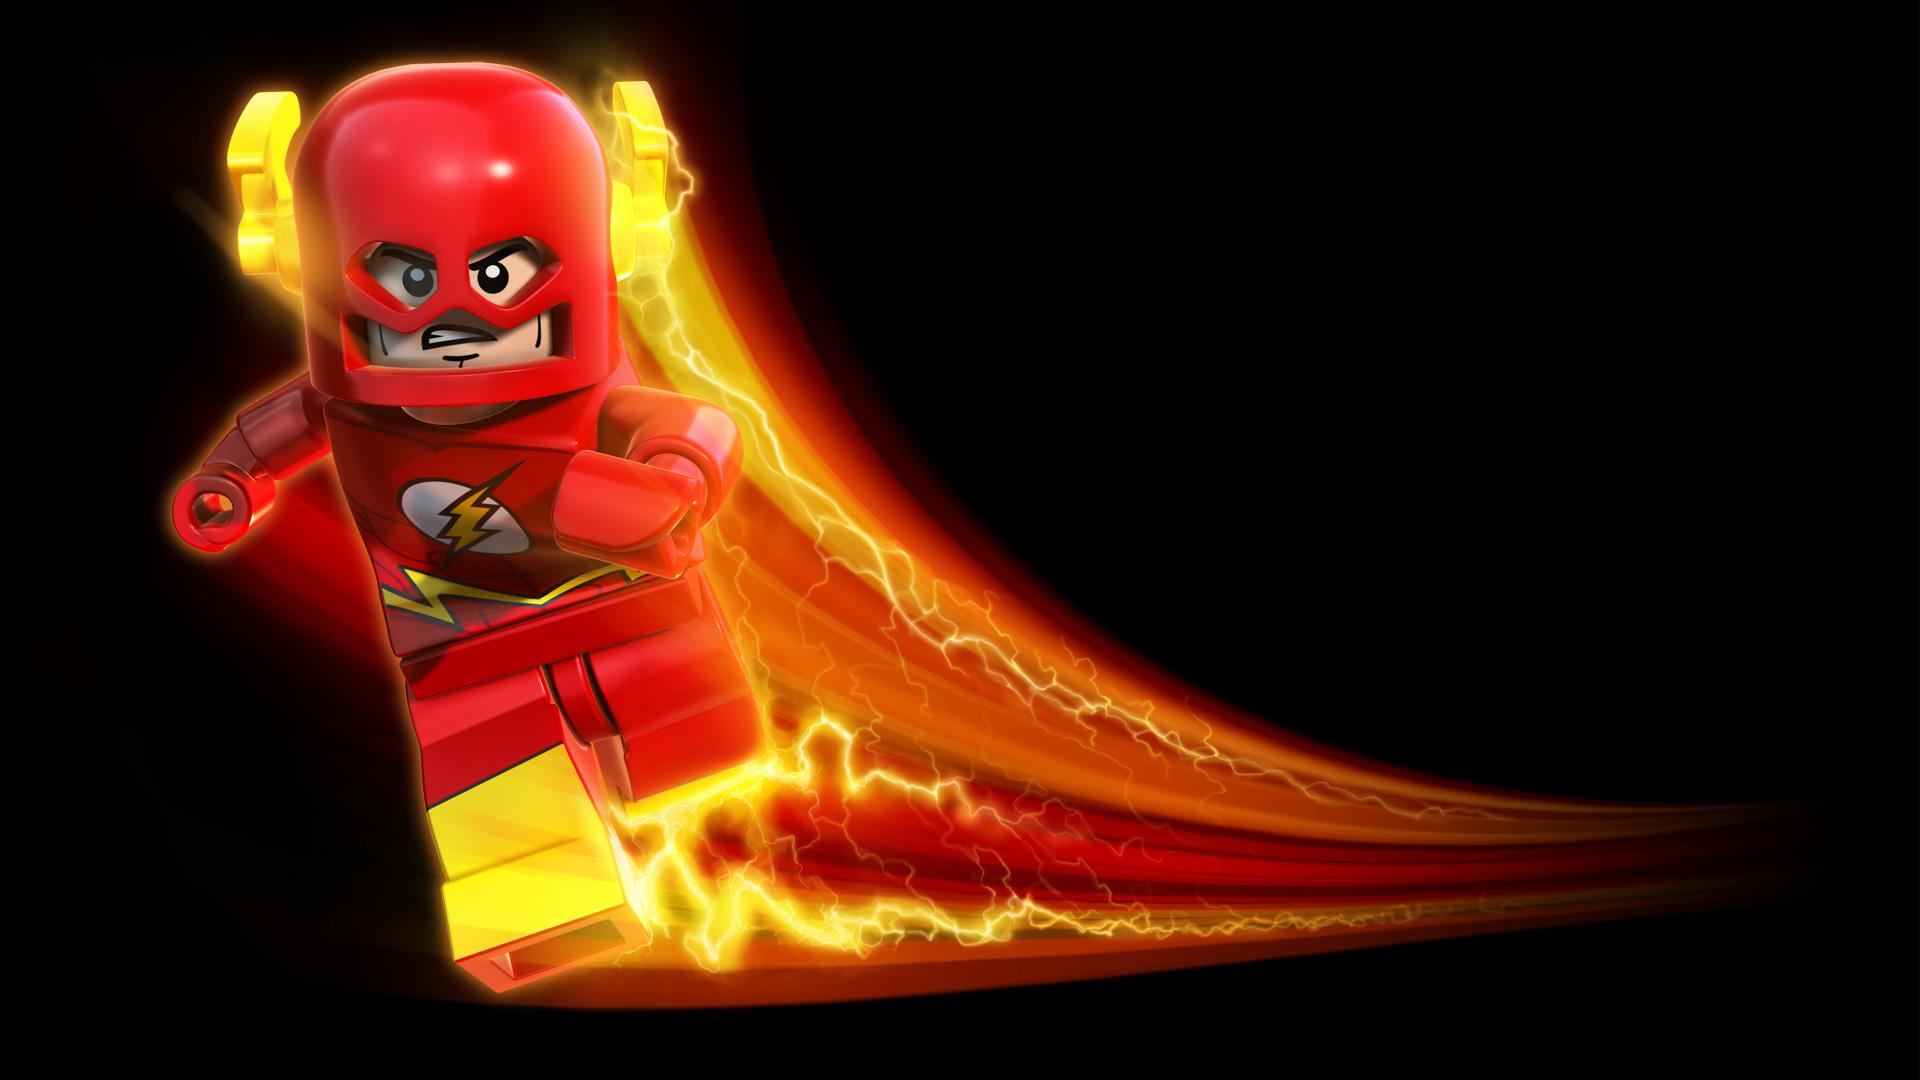 Lego wallpaper 6520 1920x1080 px for Wallpaper for a